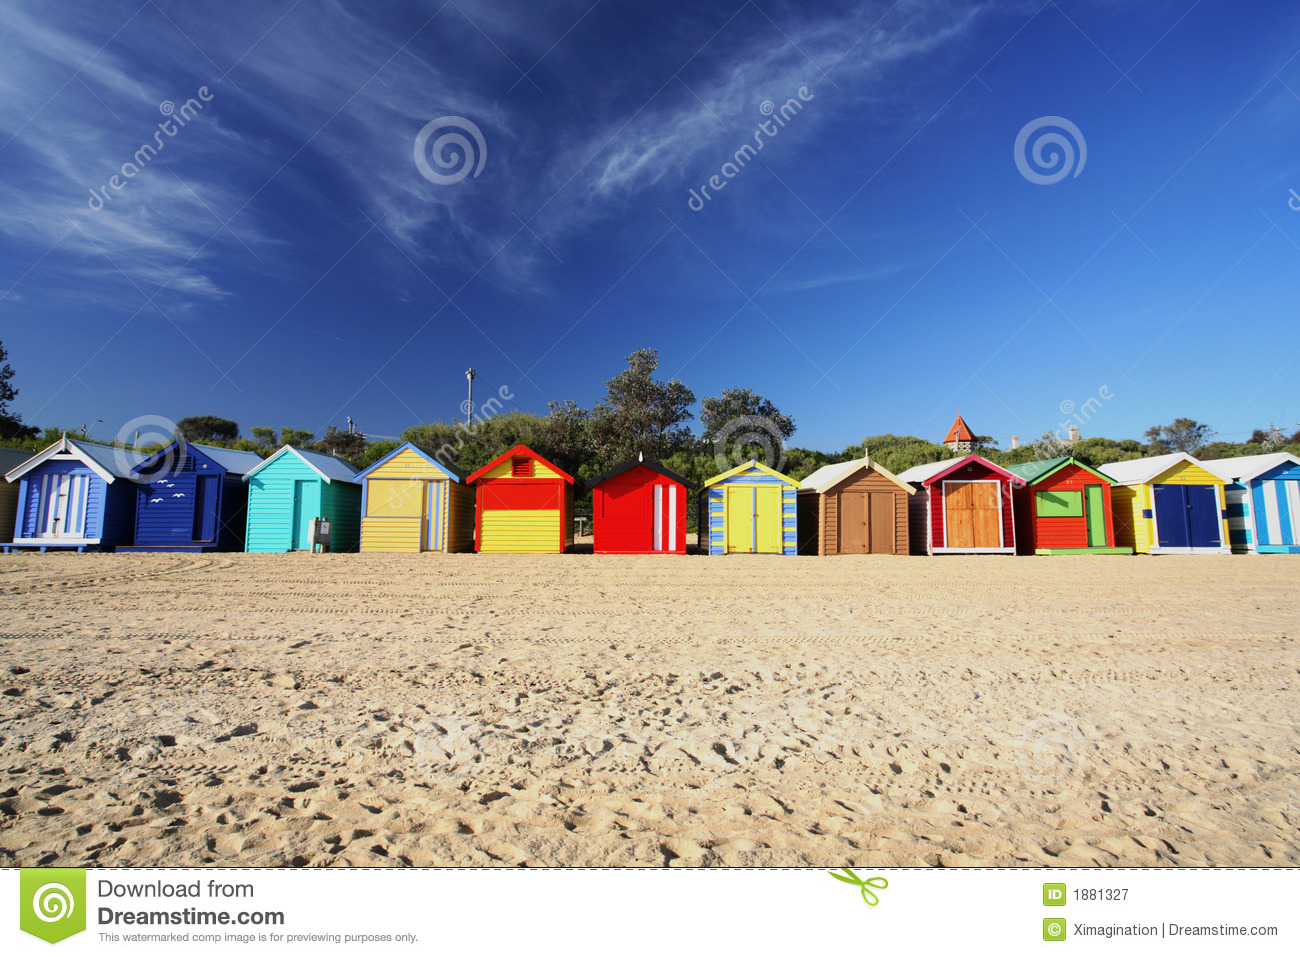 beach chairs and umbrella chiavari chair rental chicago colorful huts royalty free stock photography - image: 1881327